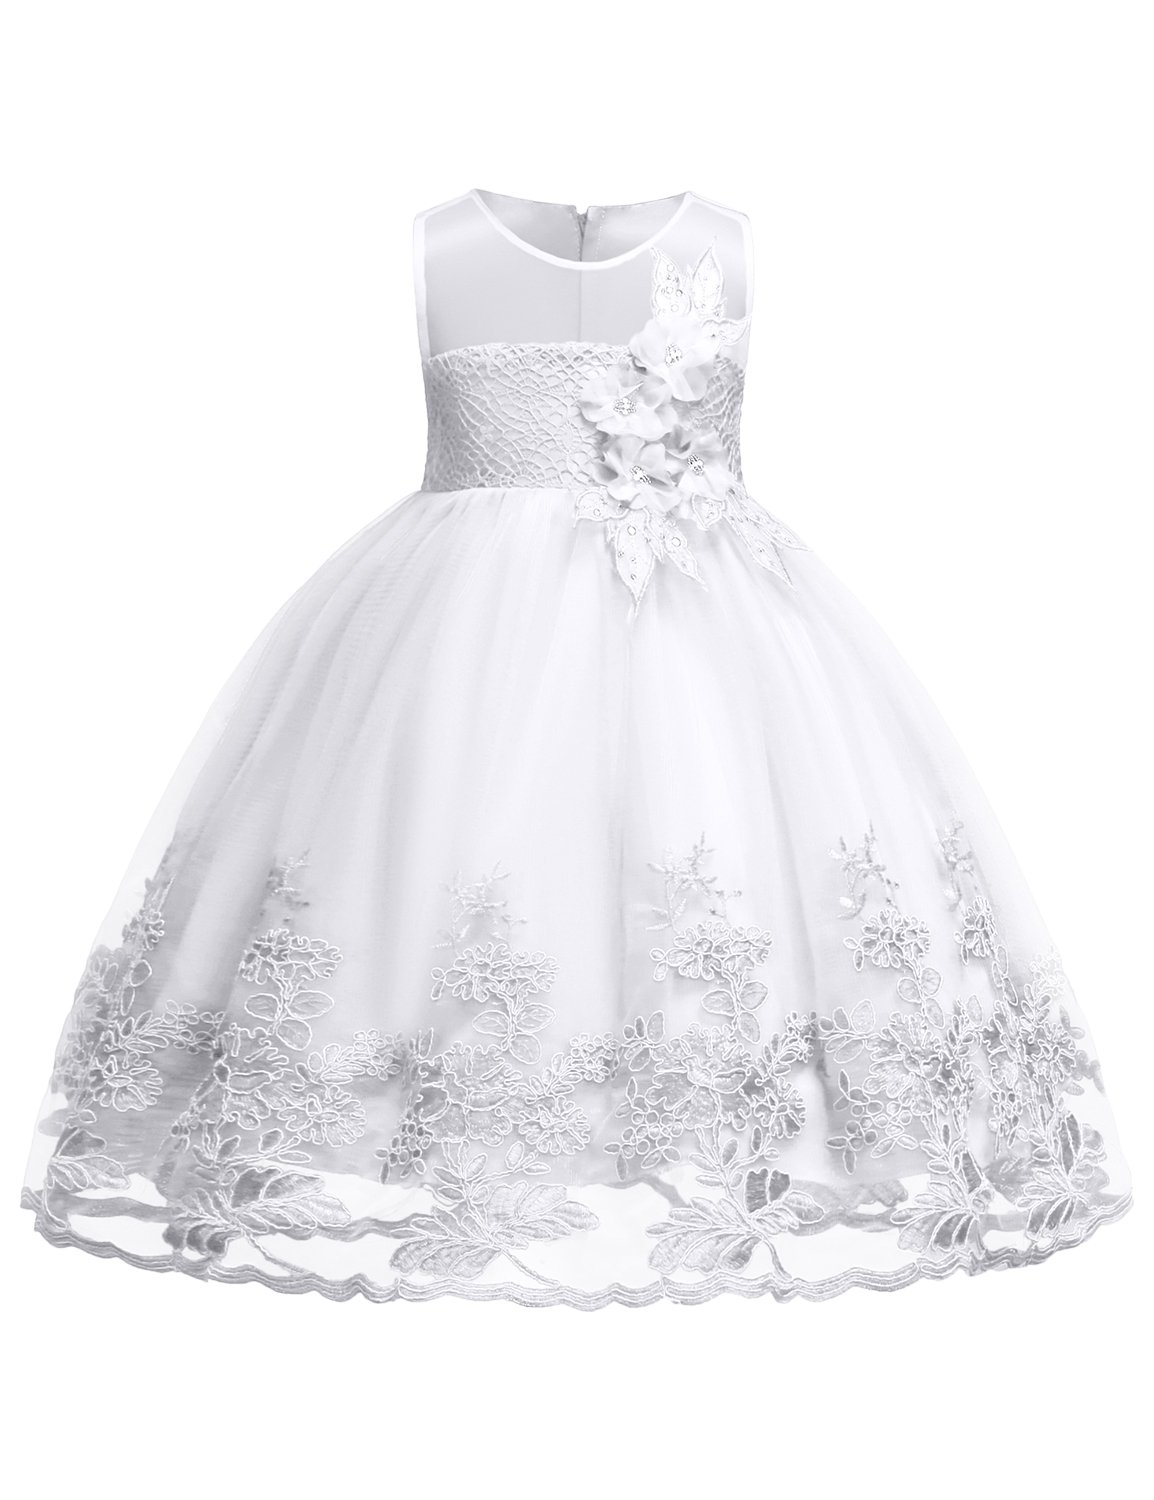 Blevonh Girl Pageant Dress Girls Double Layer Tulle Skirt Kids Flower Wedding Dresses Pageant Sleeveless Chiffon Lace Dresses Size (130) 7-8 Years White Dress